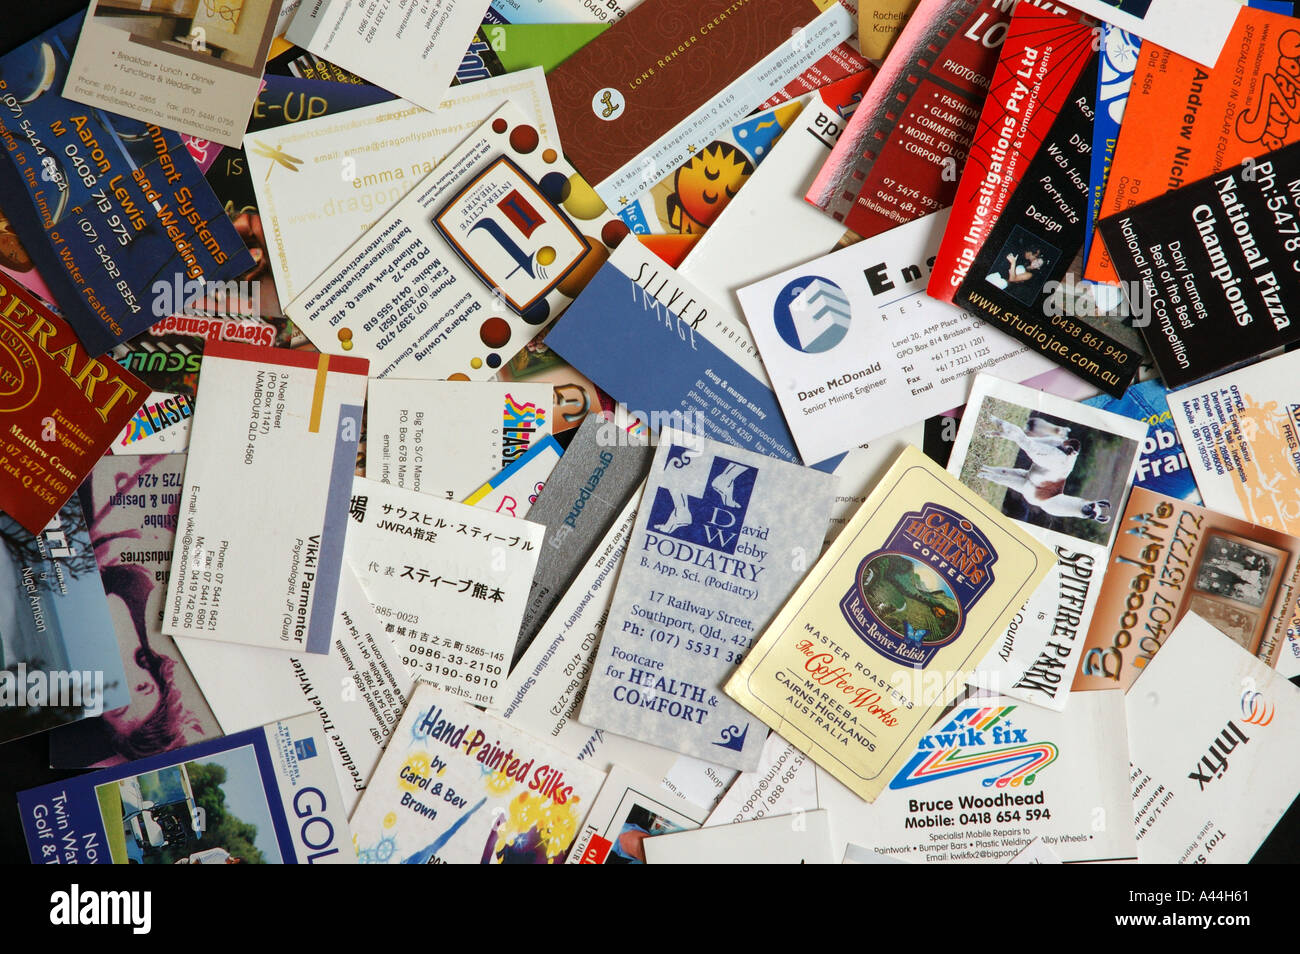 pile of mixed business cards dsca 2042 Stock Photo: 3567968 - Alamy